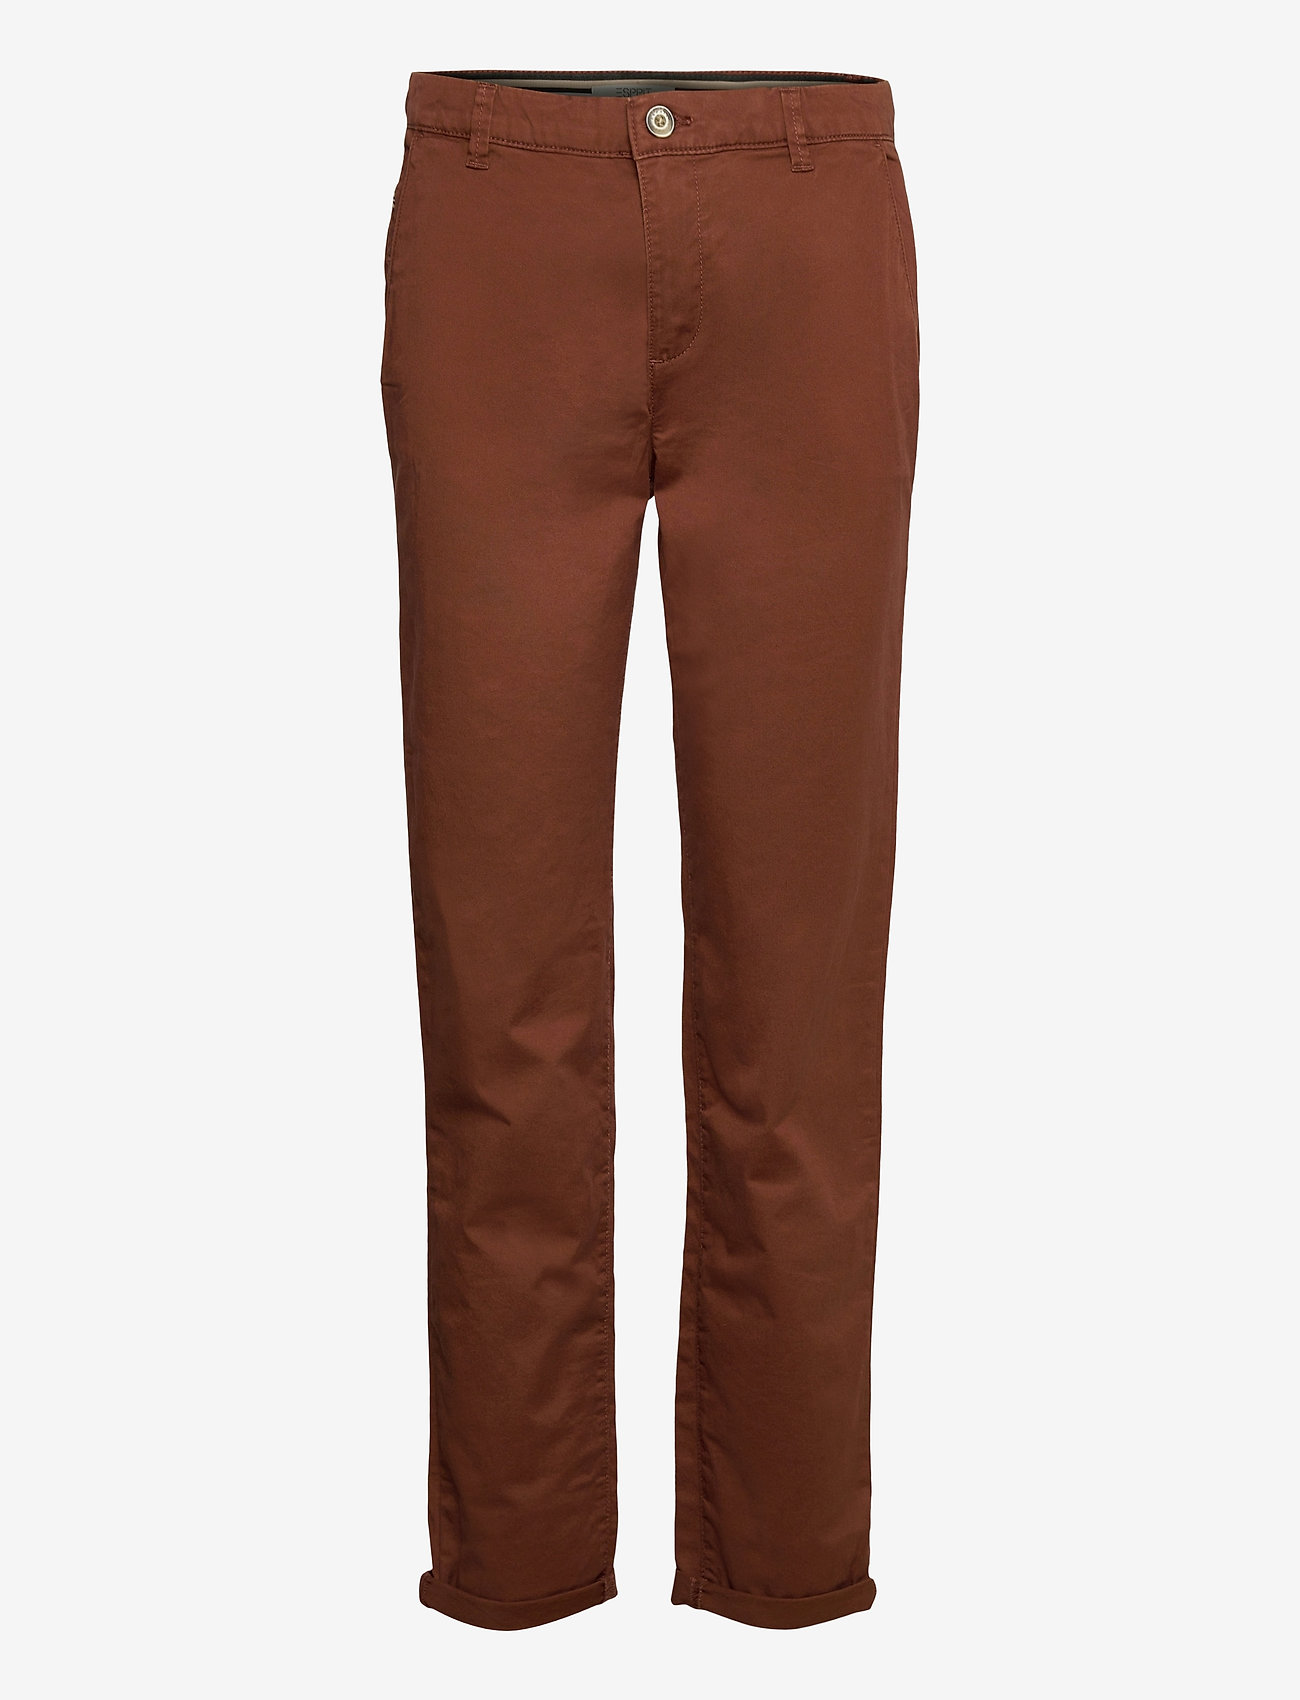 Esprit Casual - Pants woven - chinos - brown - 0